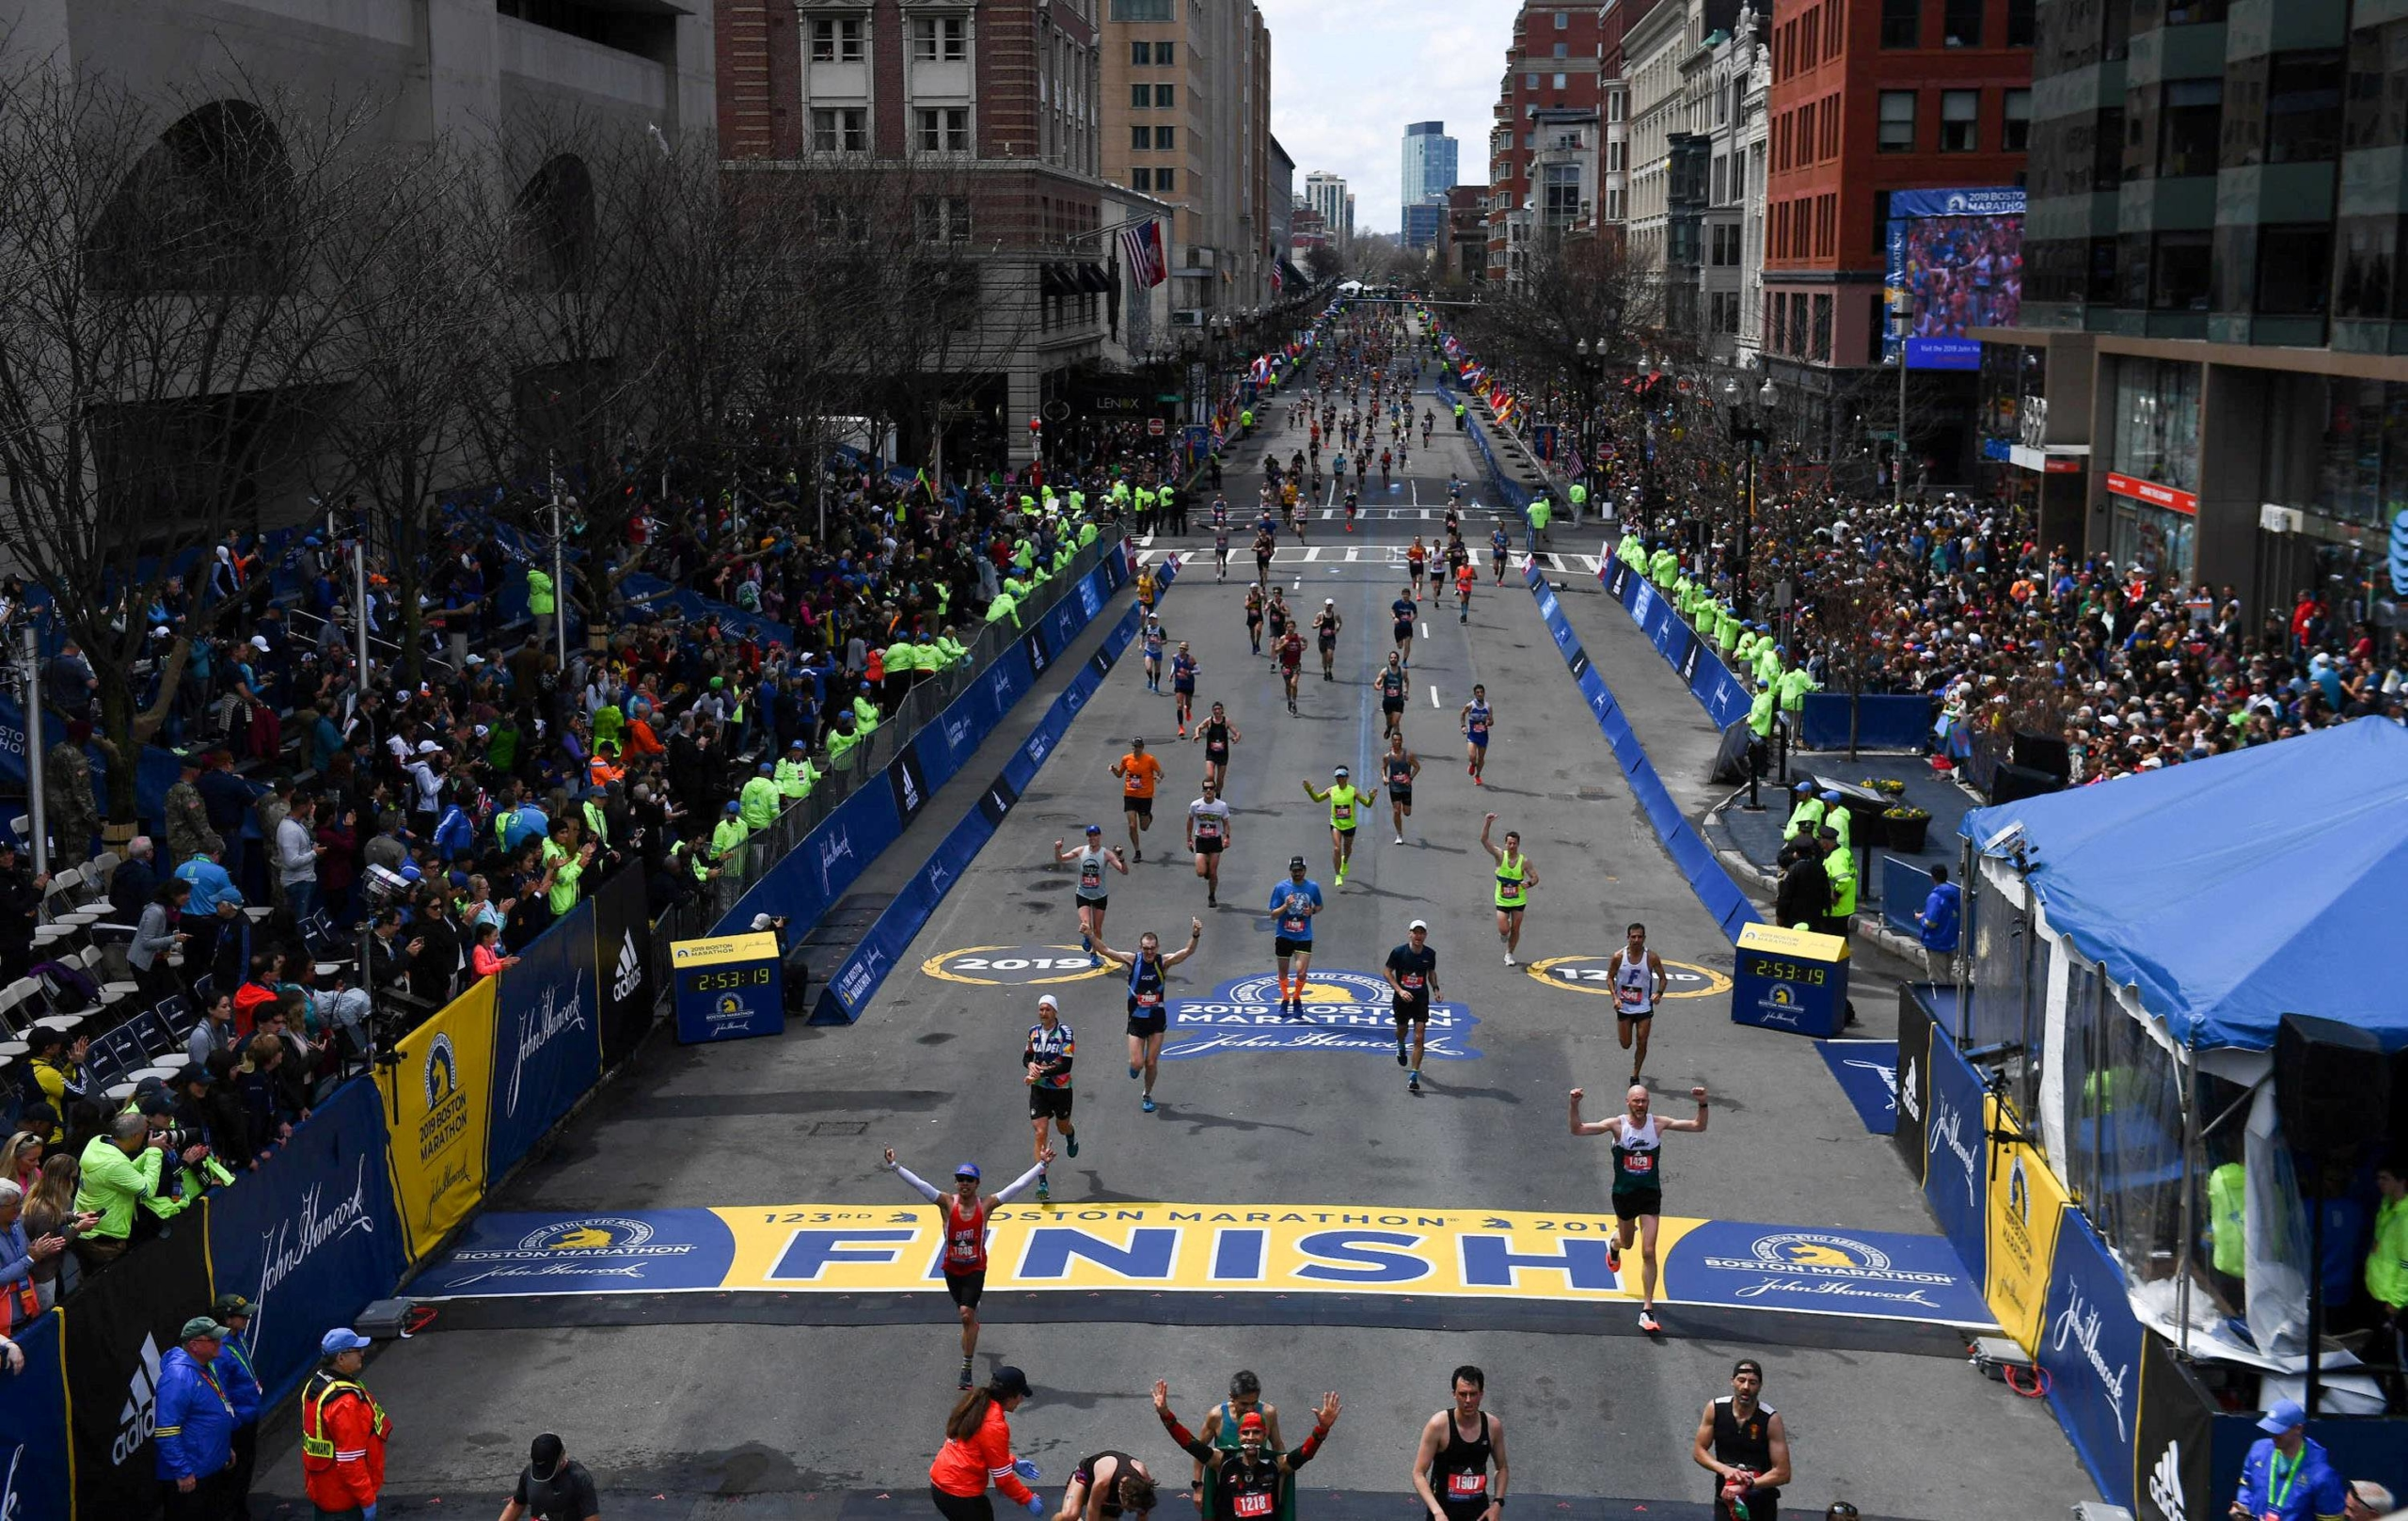 Runners approach the finish line on Boylston Street during the 123rd Boston Marathon in Boston on April 15, 2019.